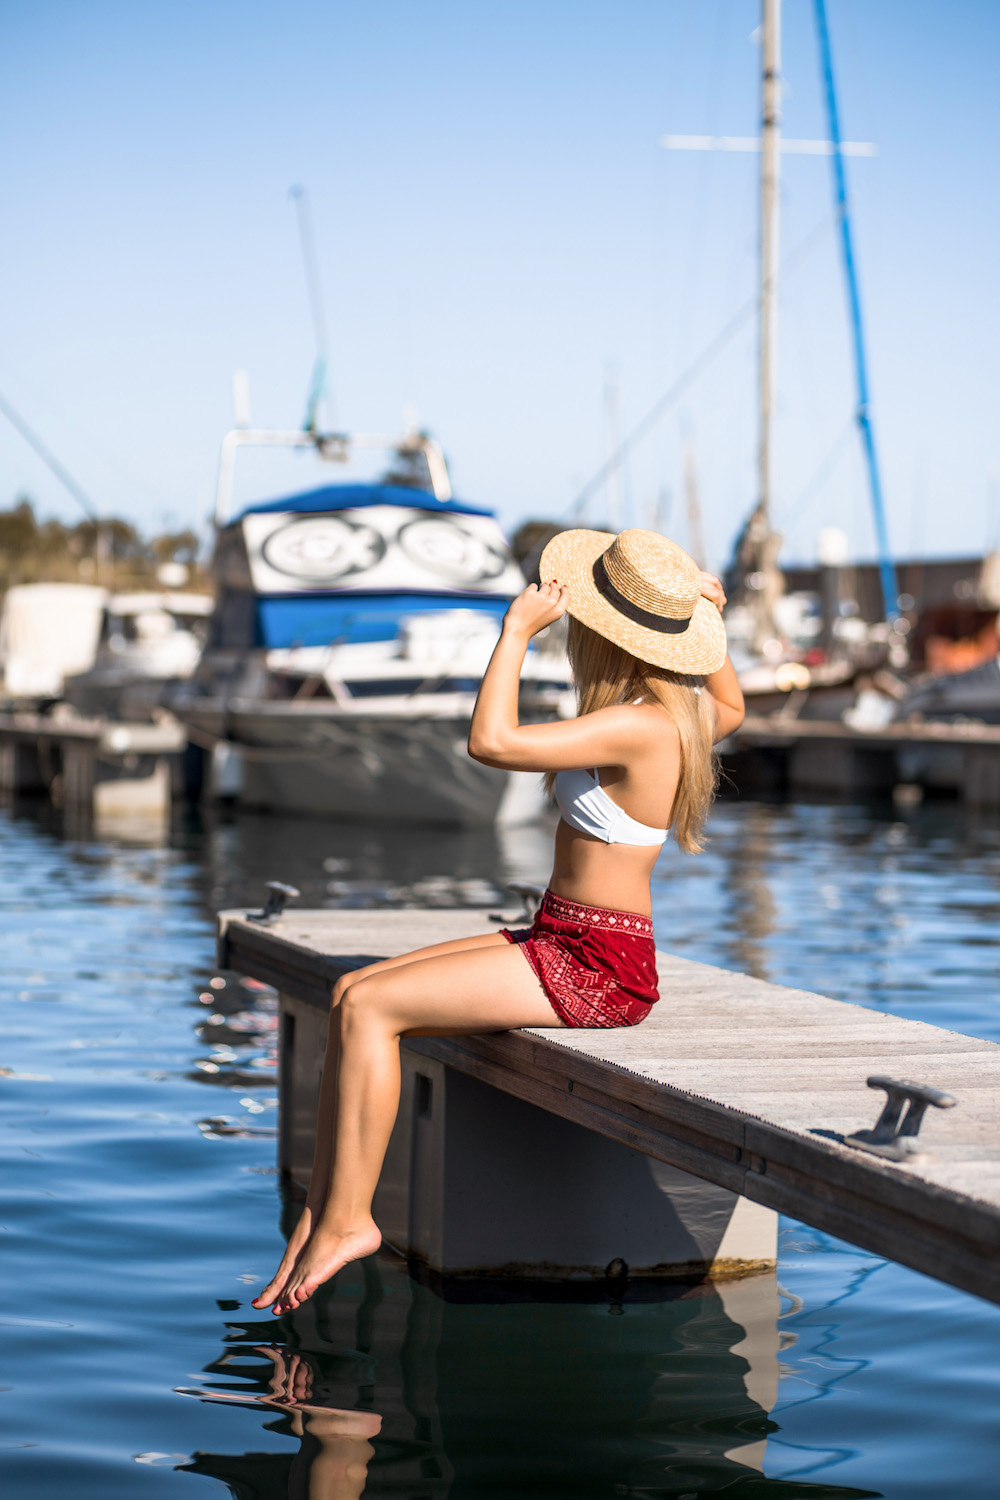 silver_girl_yacht_harbour_1.jpg